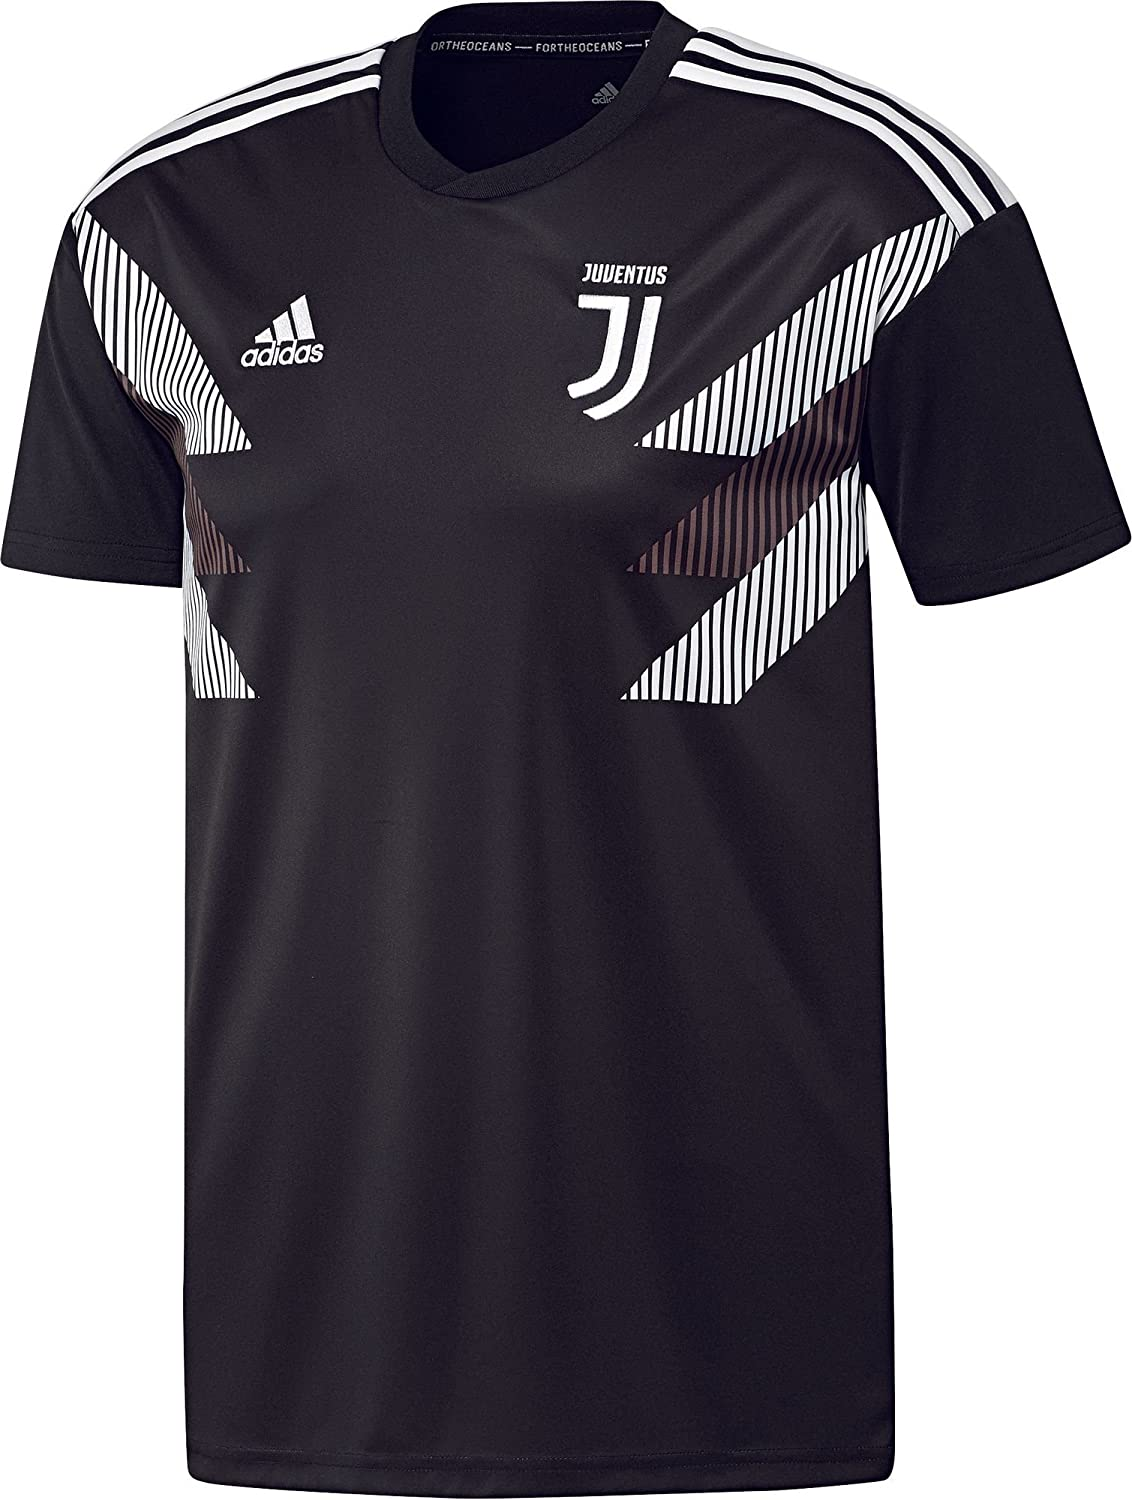 ce3ac8f90dd Amazon.com   adidas 2018-2019 Juventus Pre-Match Training Football Soccer T- Shirt Jersey (Black)   Sports   Outdoors